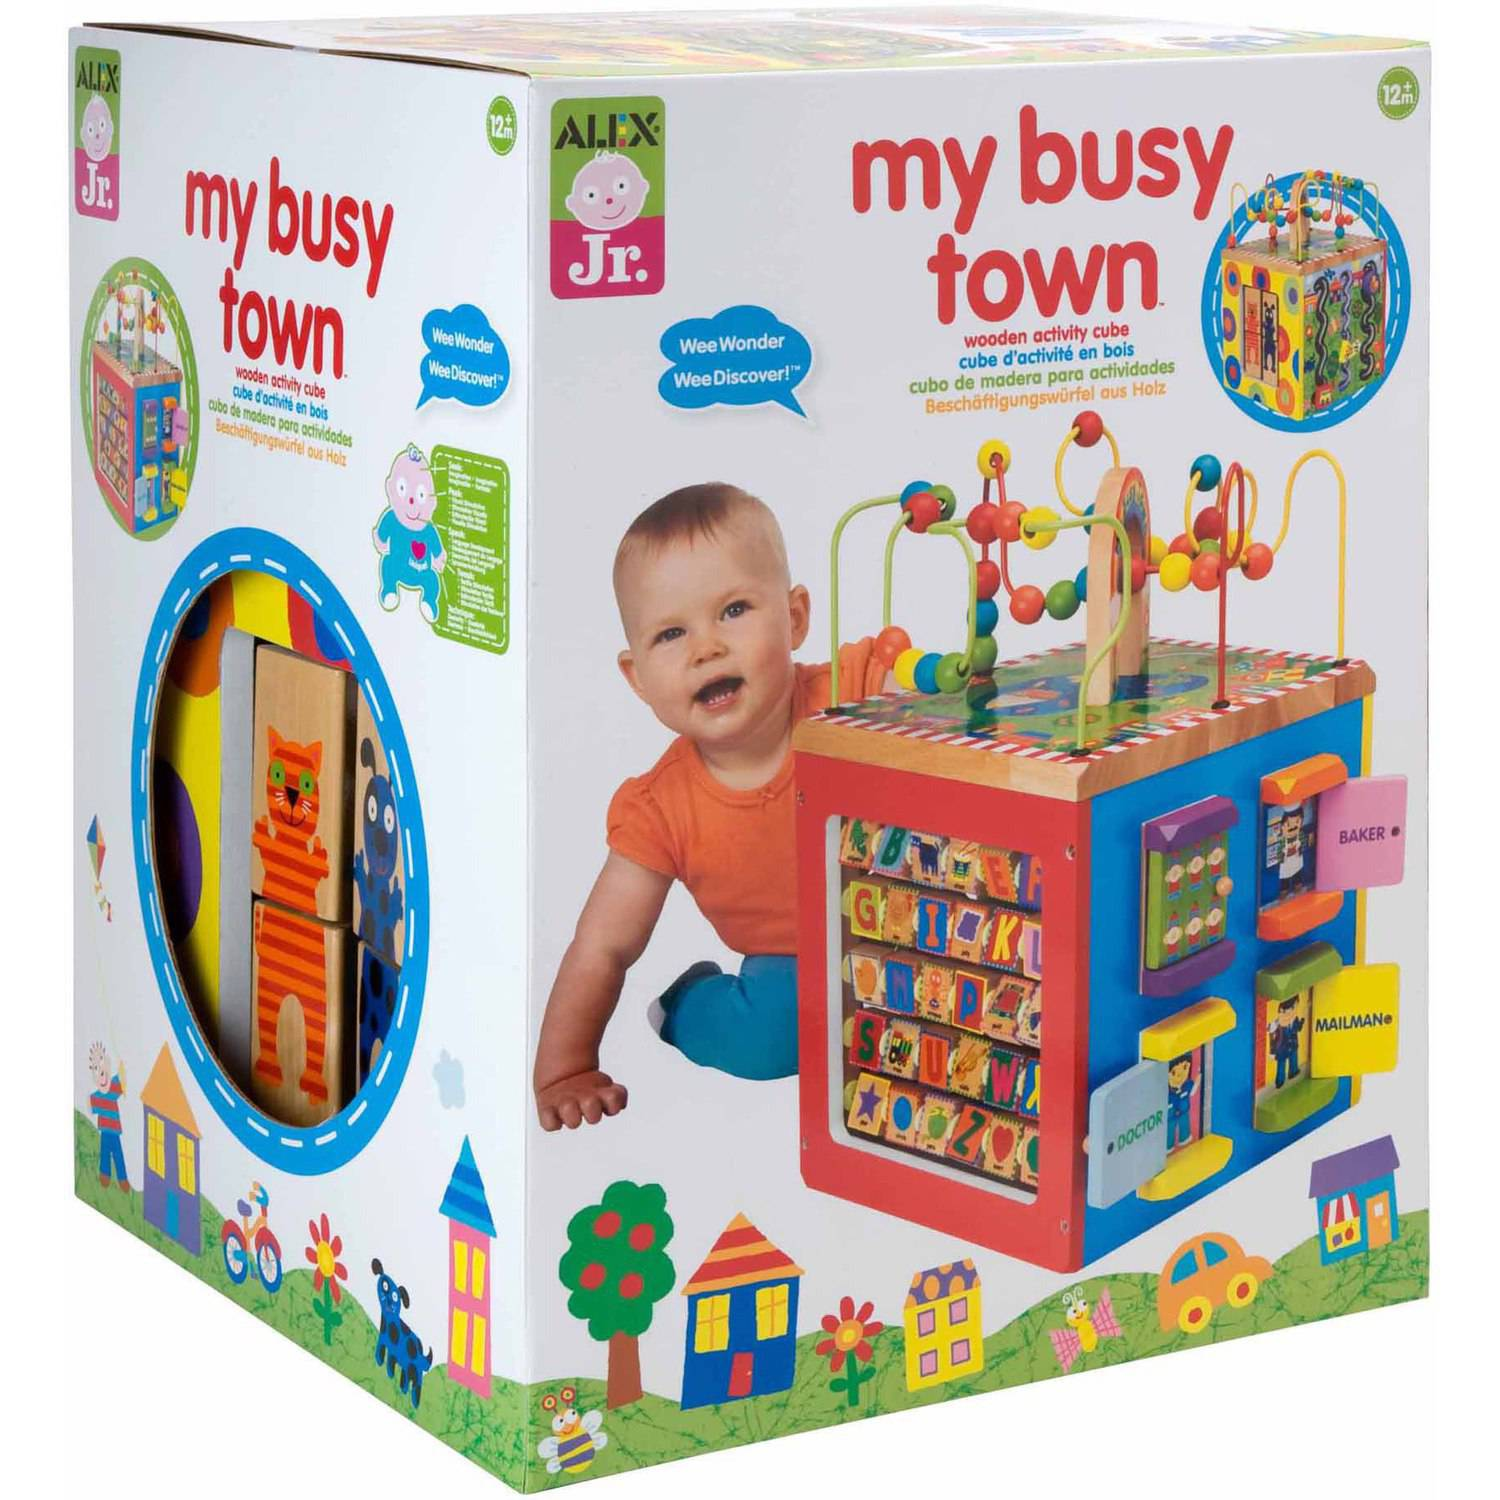 ALEX Toys ALEX Jr. My Busy Town Wooden Activity Cube 0A4W